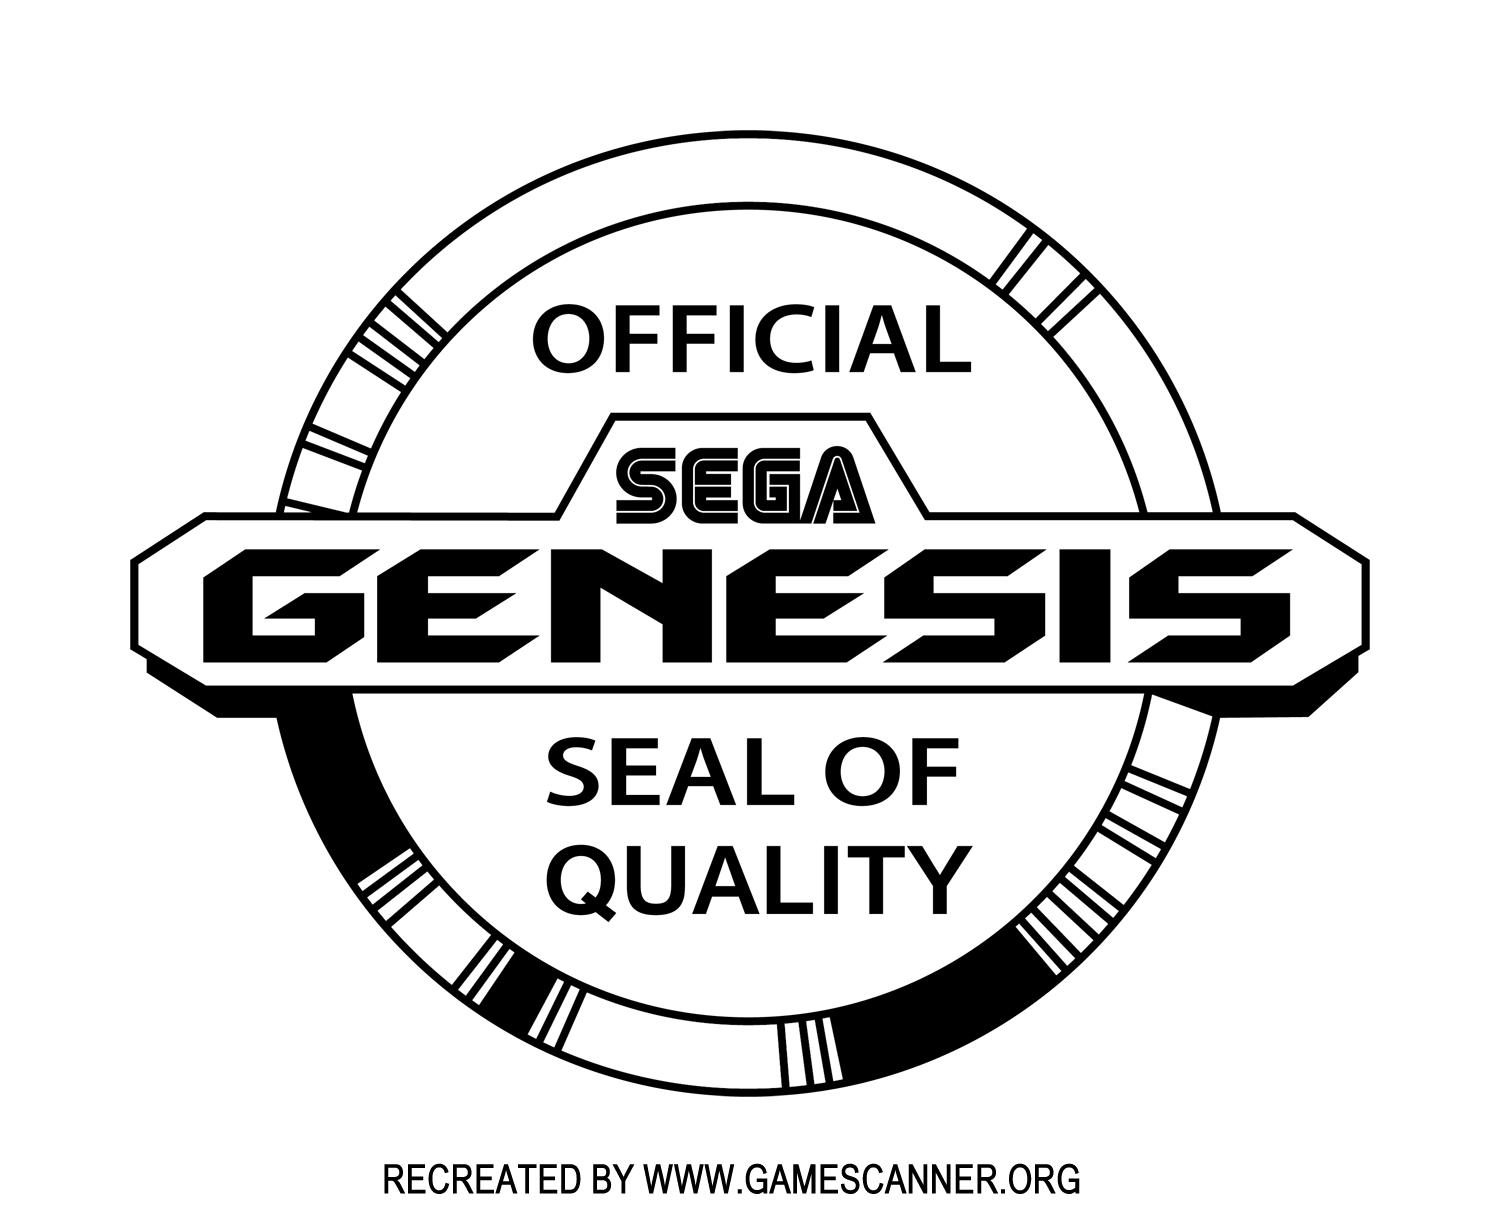 Sega Genesis Seal of Quality logo - B&W